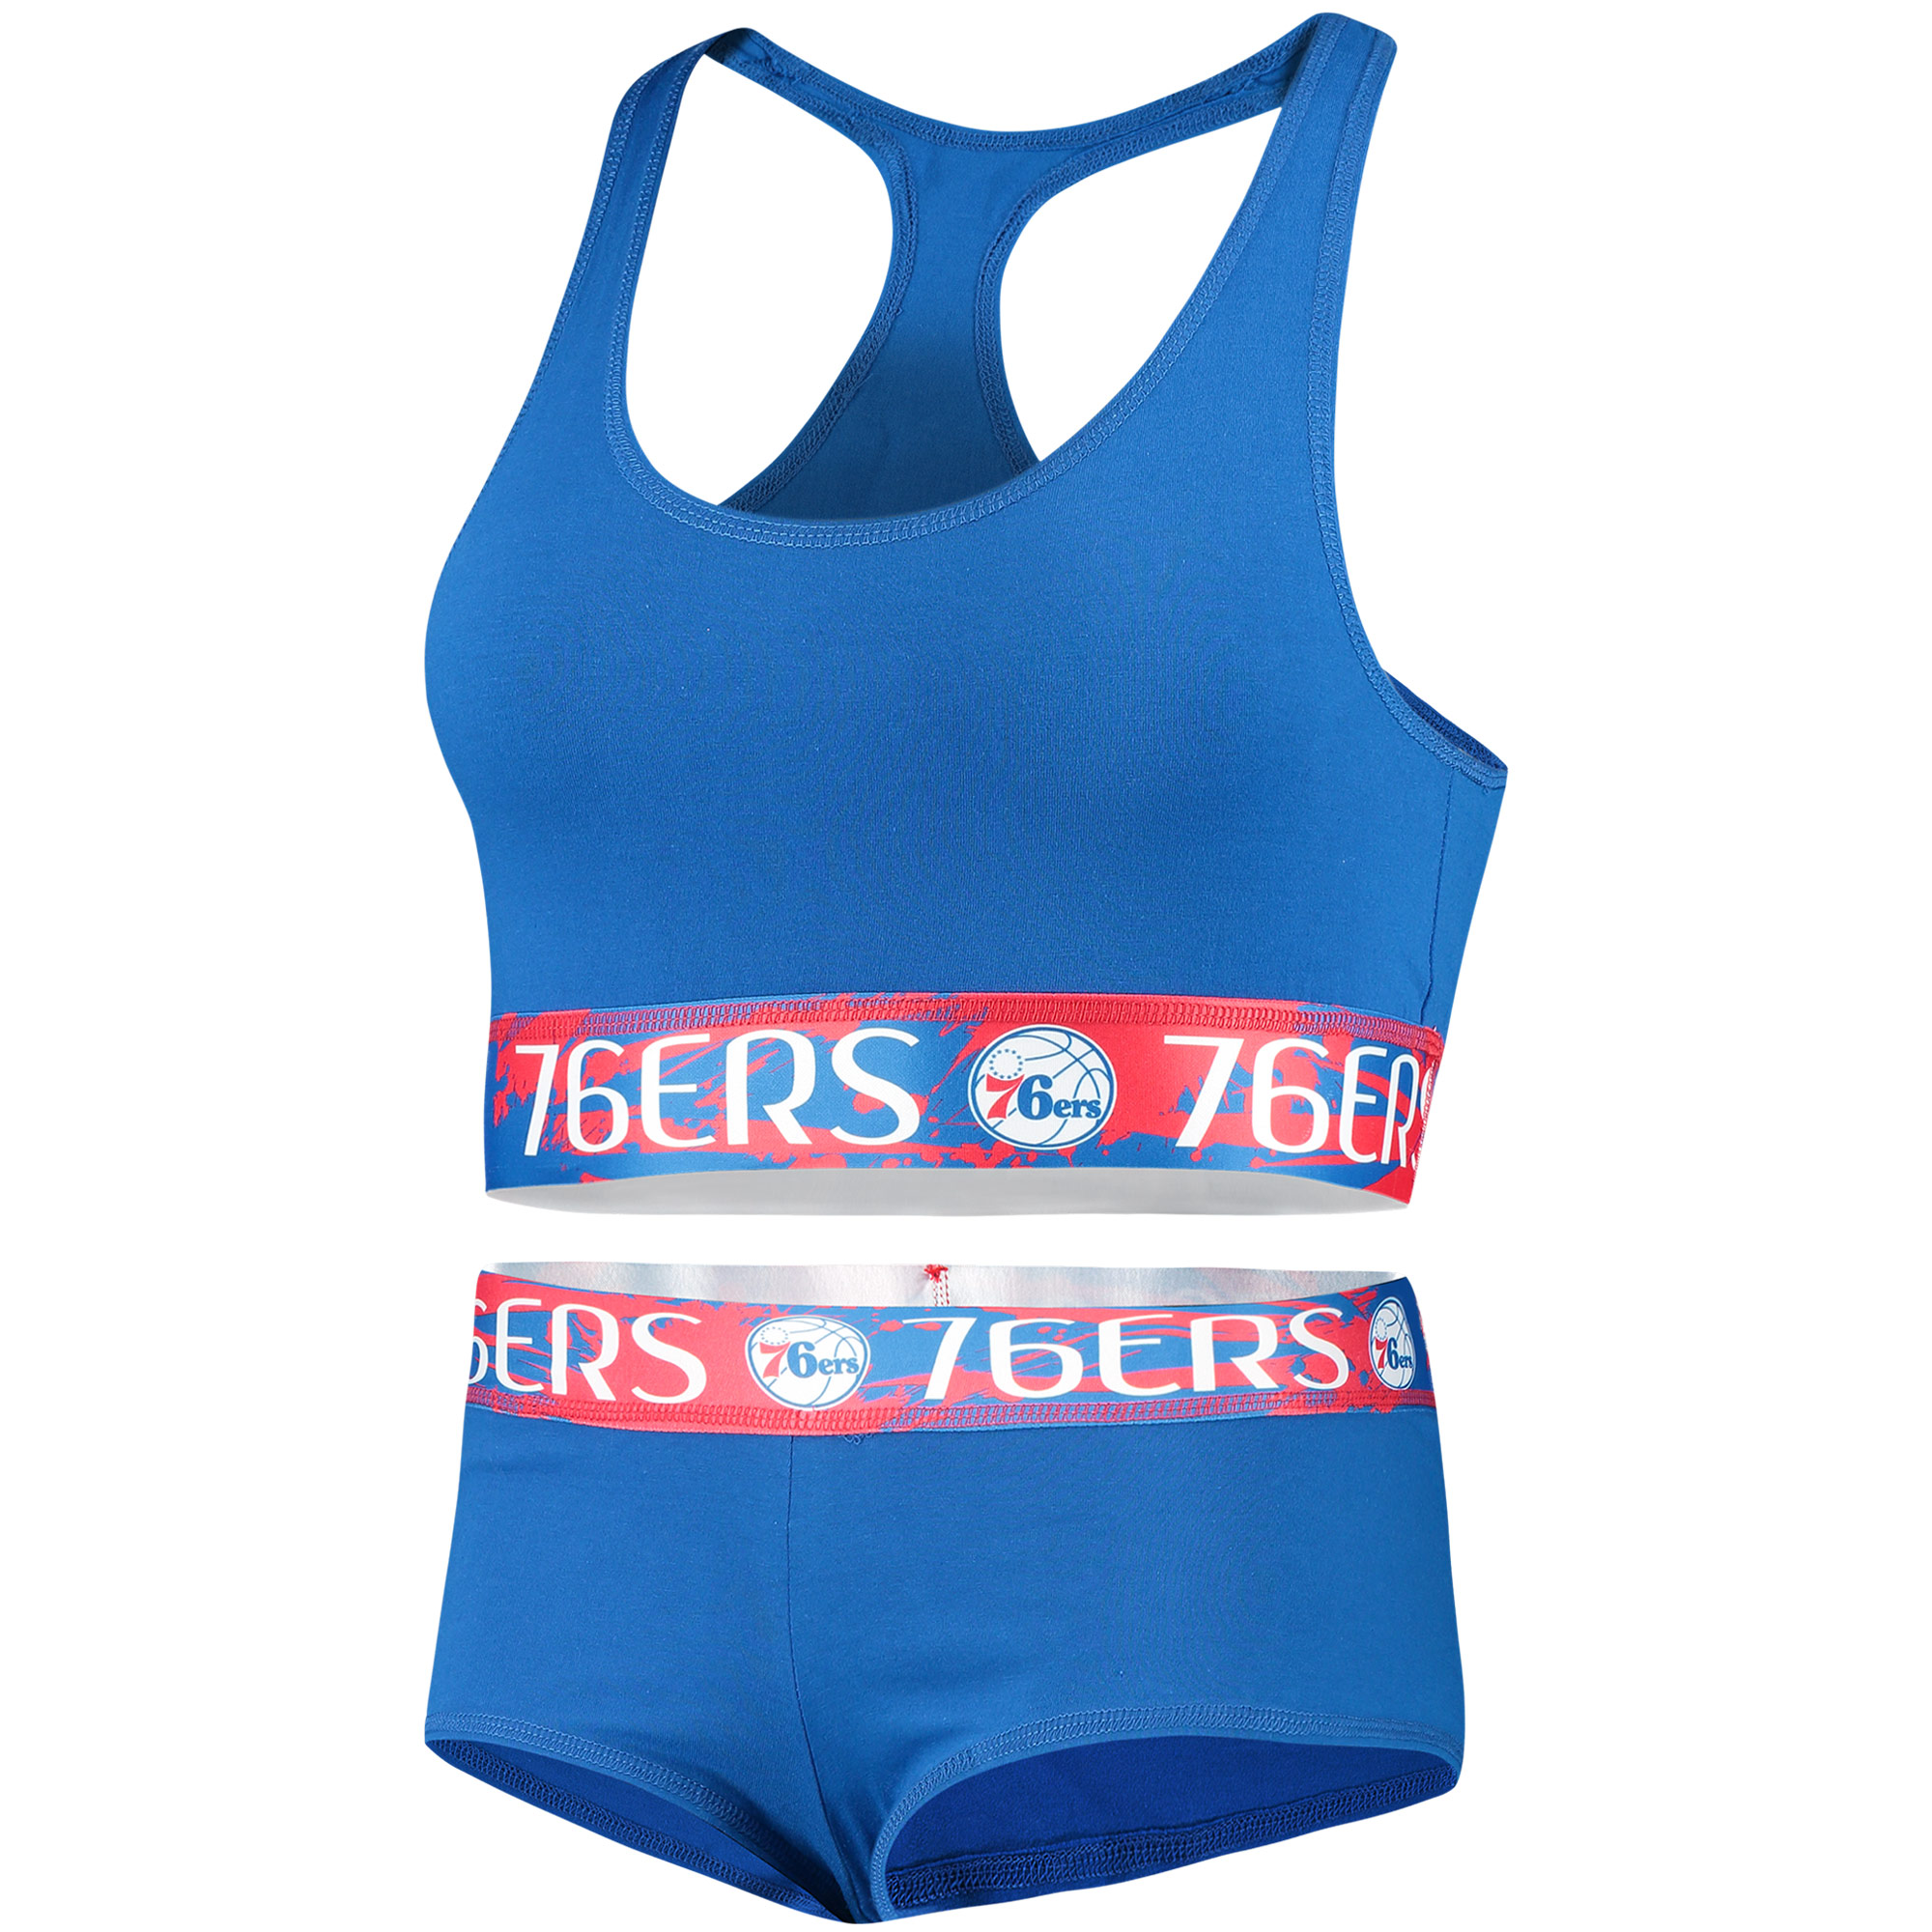 Philadelphia 76ers Concepts Sport Women's Bralette & Boyshorts Set - Royal/Red